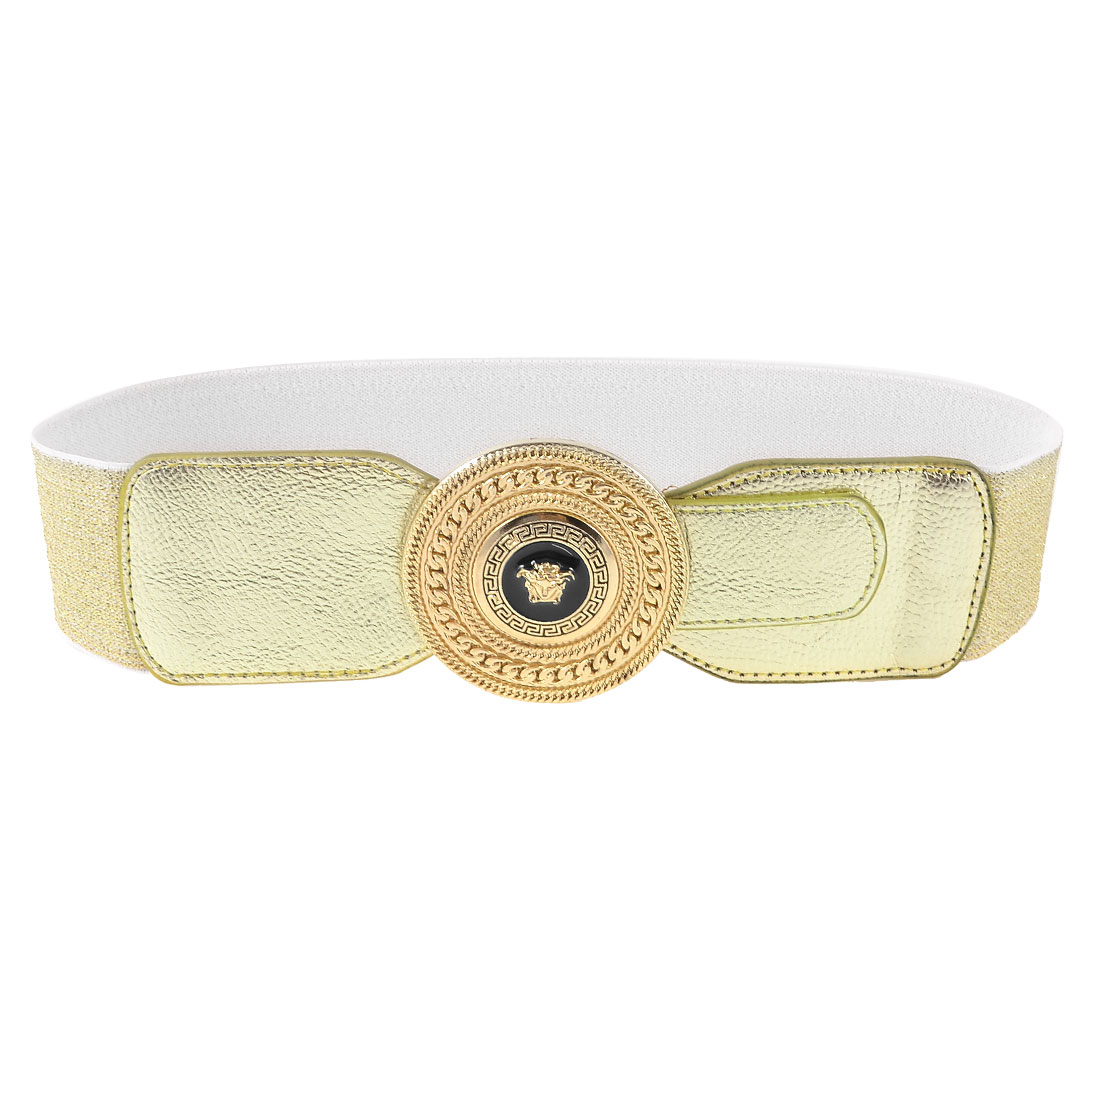 Faux Leather Decor Metallic Single Prong Buckle Gold Tone Cinch Belt for Ladies